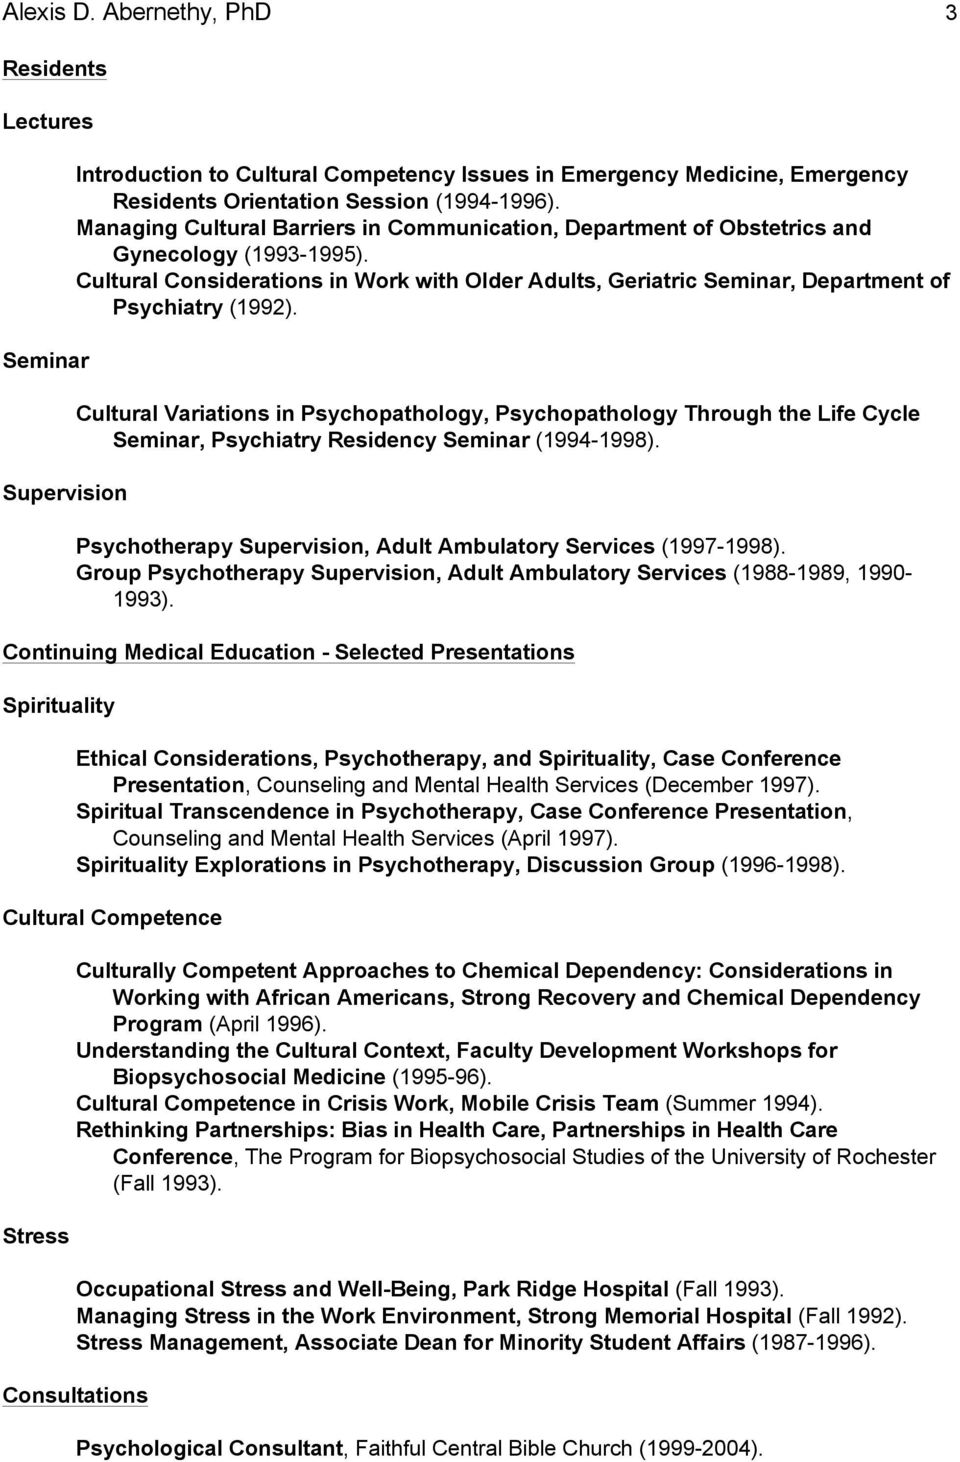 Cultural Variations in Psychopathology, Psychopathology Through the Life Cycle Seminar, Psychiatry Residency Seminar (1994-1998). Psychotherapy Supervision, Adult Ambulatory Services (1997-1998).